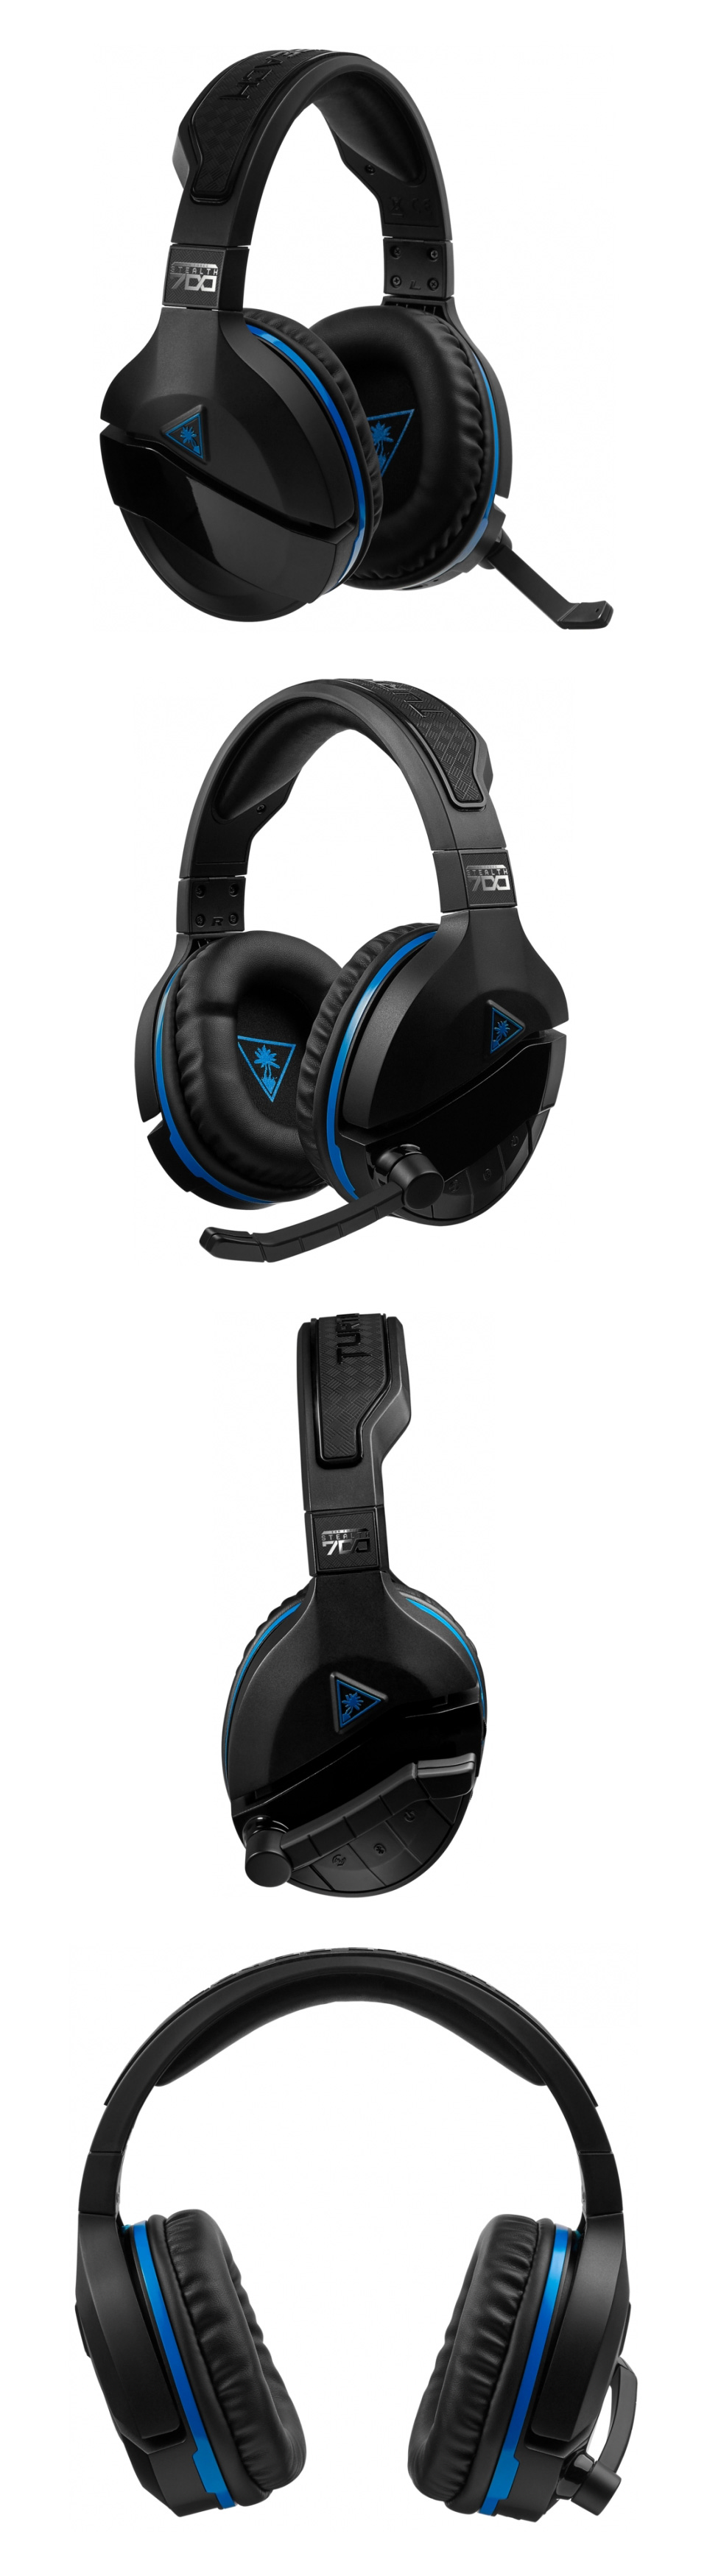 Turtle Beach Stealth 700P Wireless 7.1 Gaming Headset product